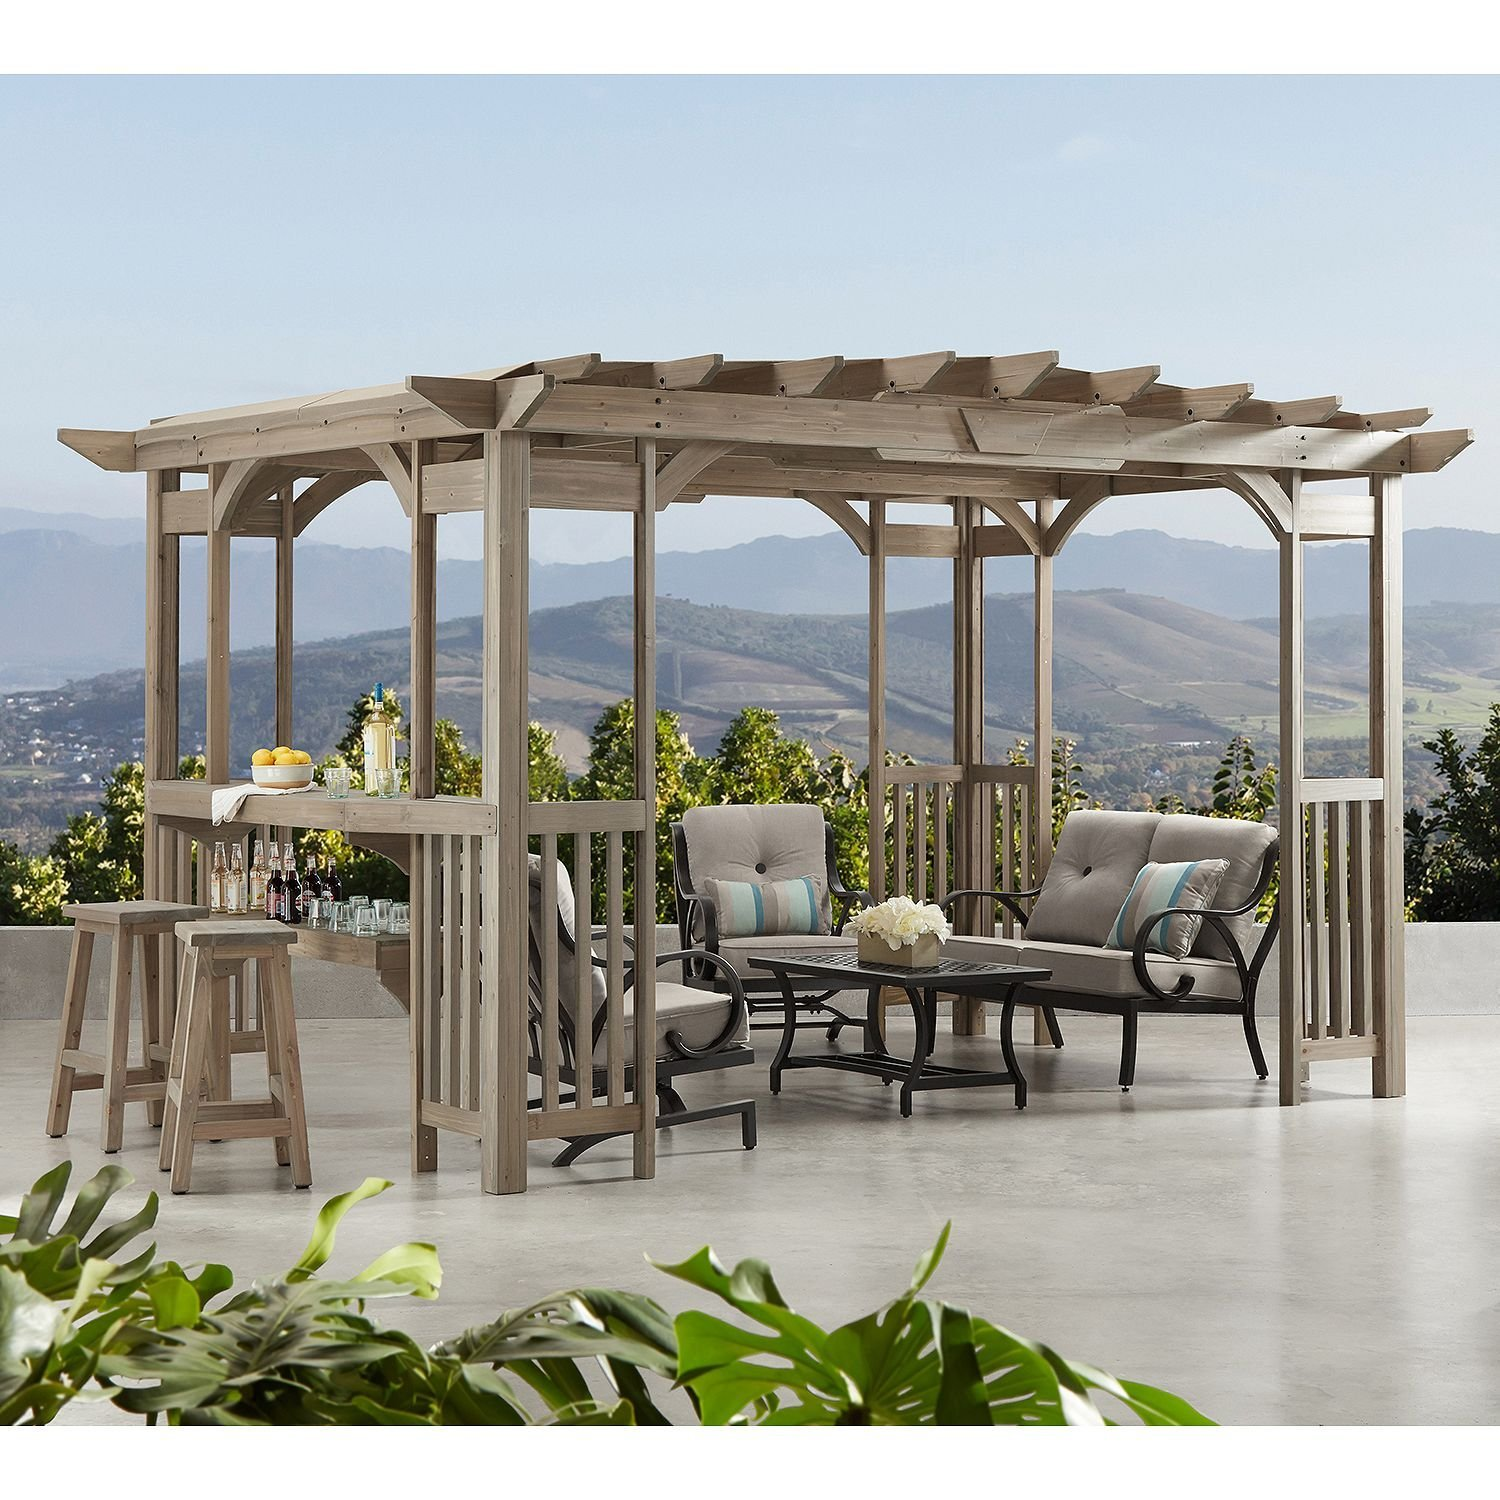 Get Quotations · MM Cedar Pergola Gazebo with Bar Counter and Sunshade in  Timber Gray Stain 12' x - Cheap Gazebo Pergola Designs, Find Gazebo Pergola Designs Deals On